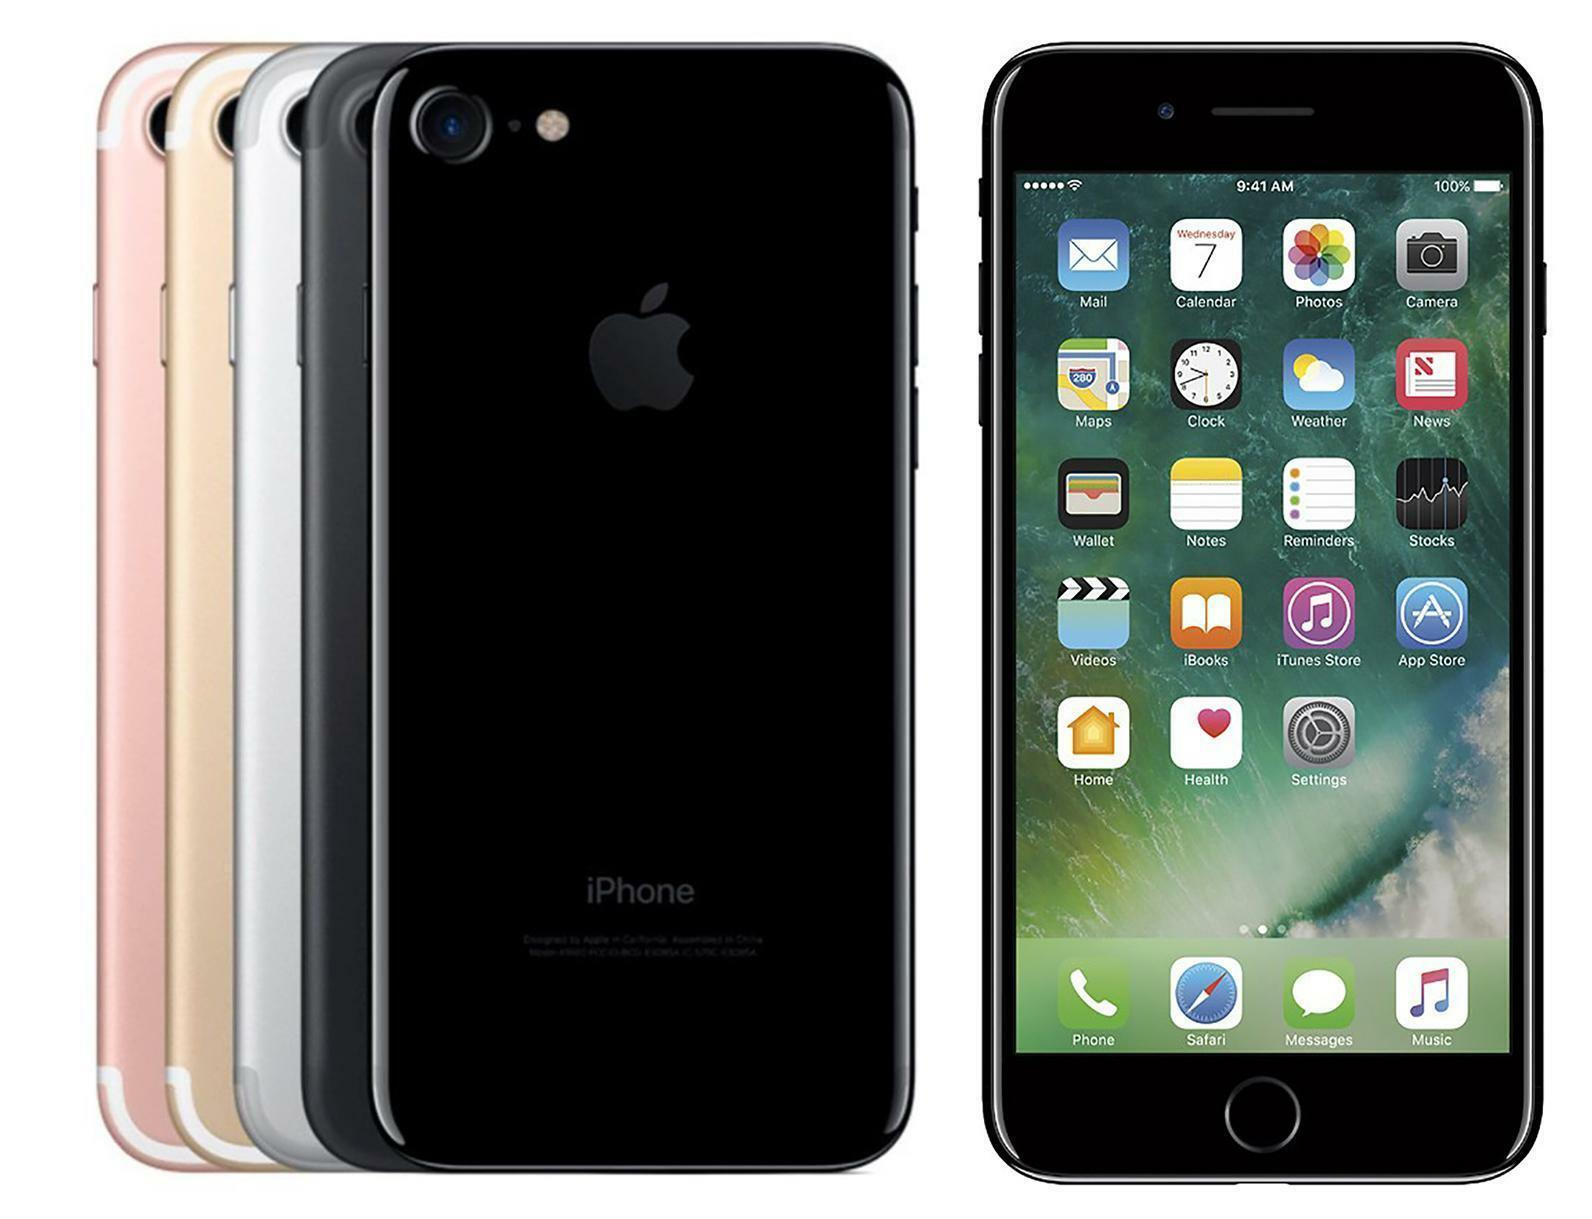 $379.95 - Apple iPhone 7 32GB Unlocked GSM Smartphone 4G LTE Quad-Core 12MP Camera Phone